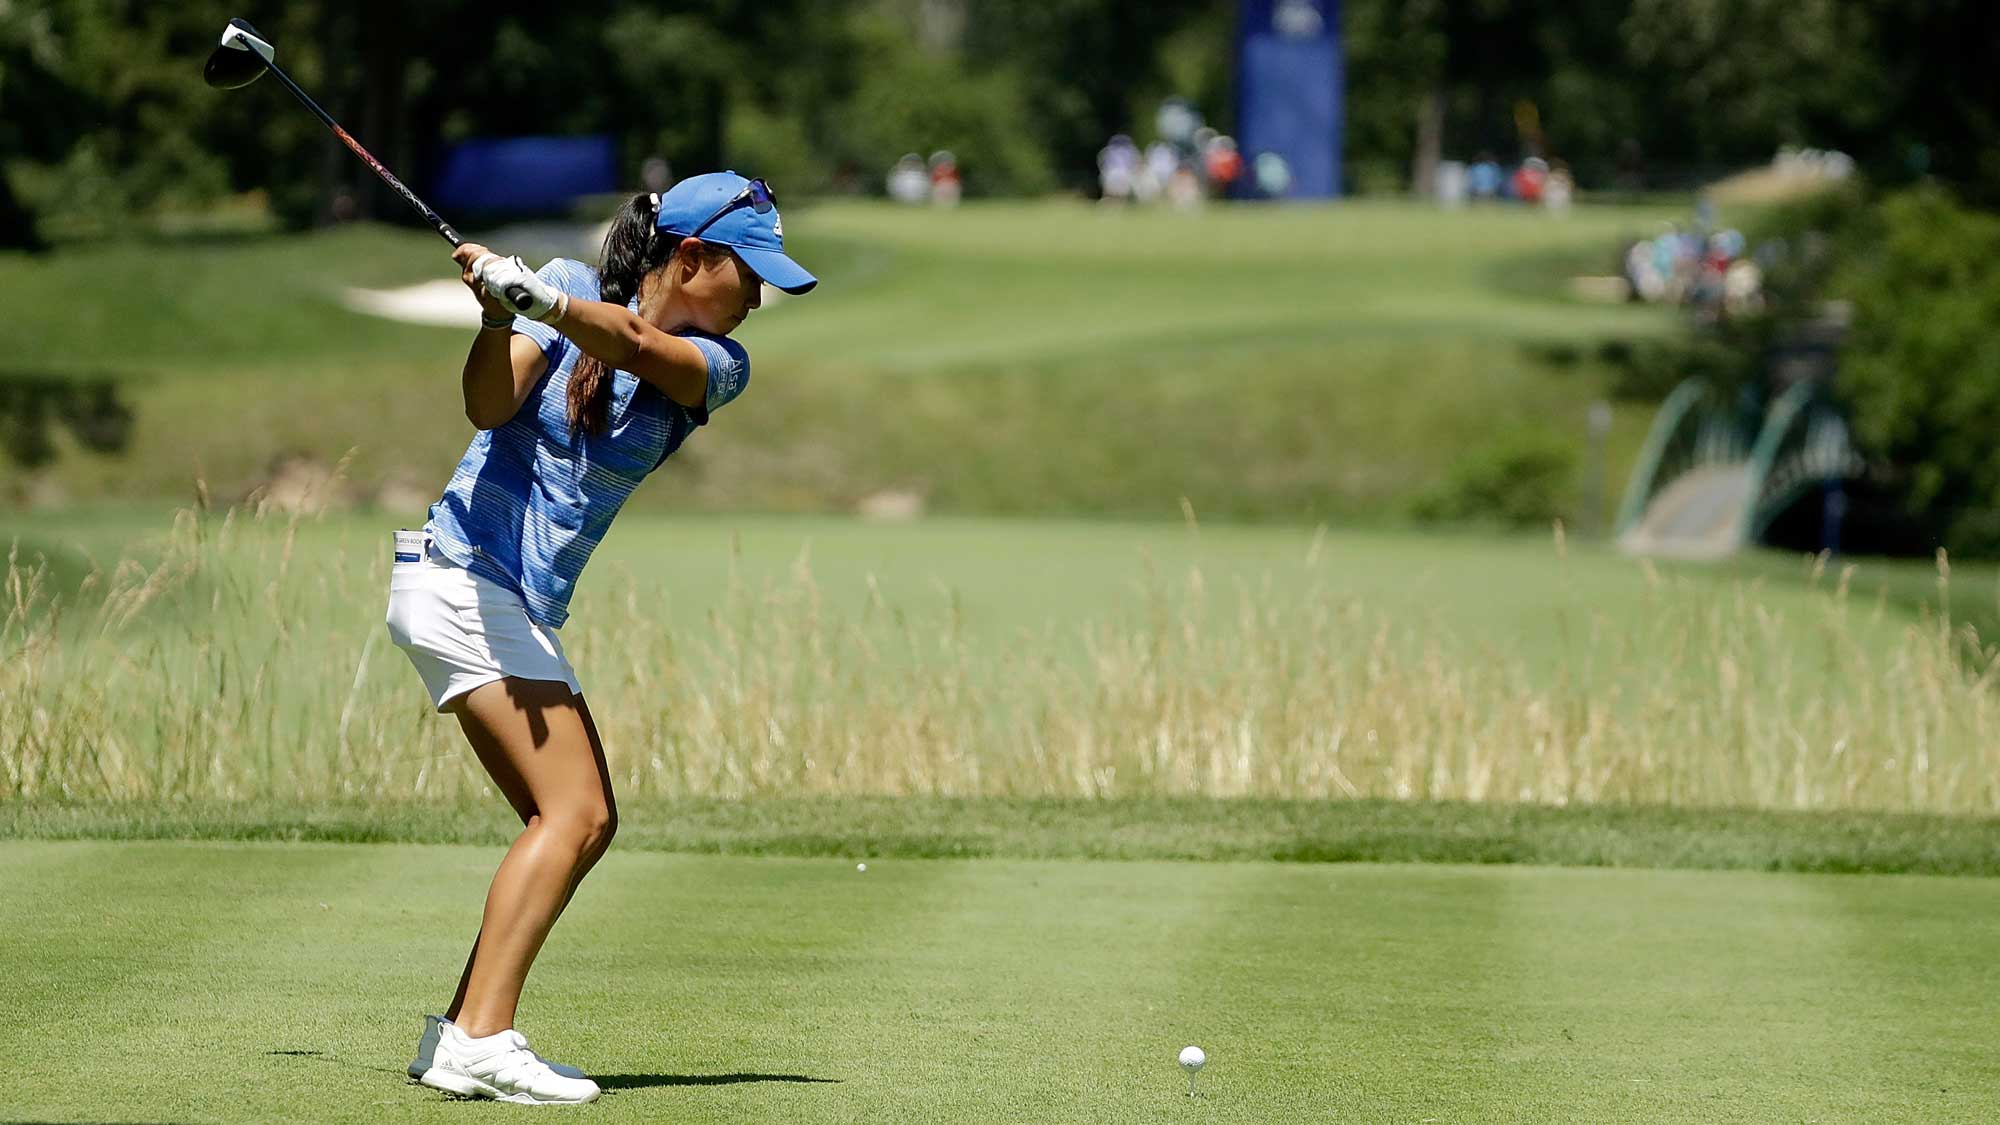 Danielle Kang hits her tee shot on the fifth hole during the final round of the 2017 KPMG PGA Championship